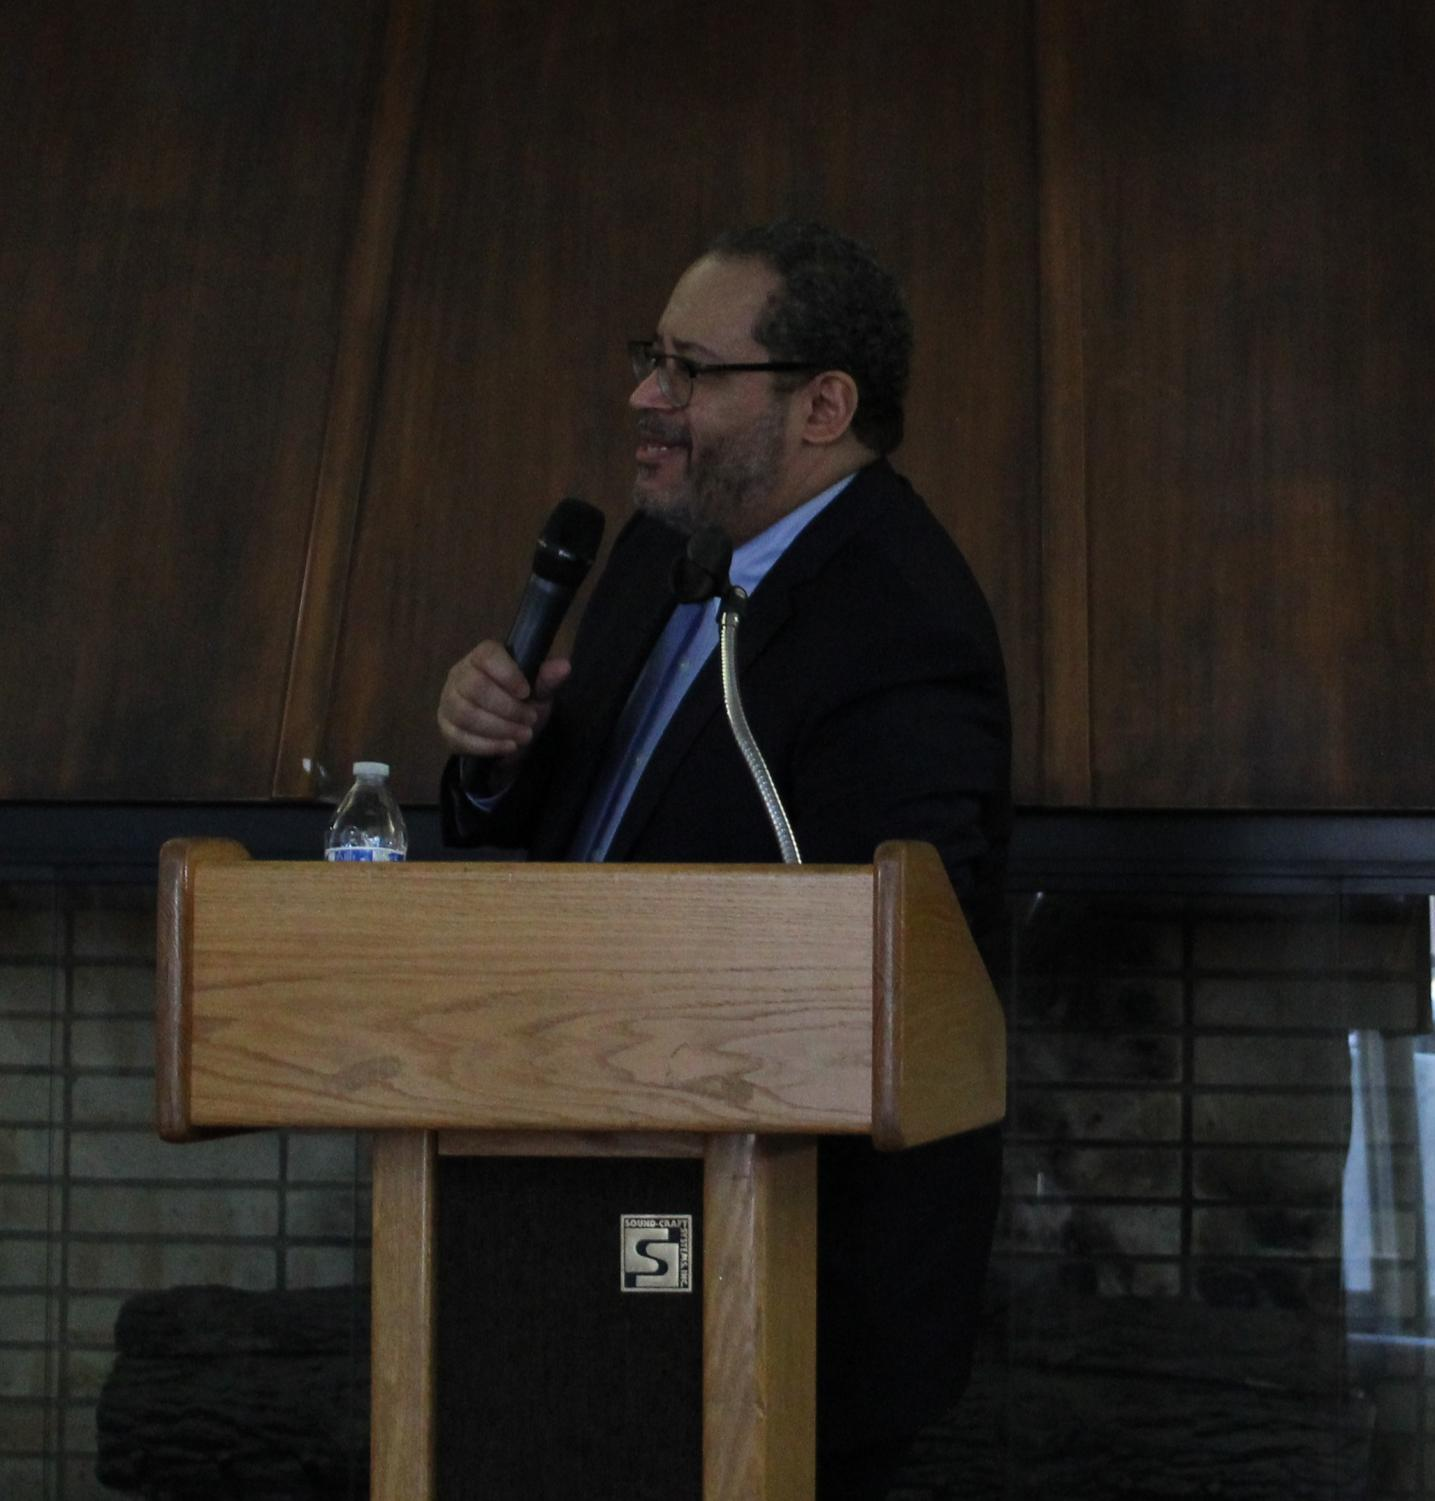 Michael Eric Dyson discussing his experience as an author.